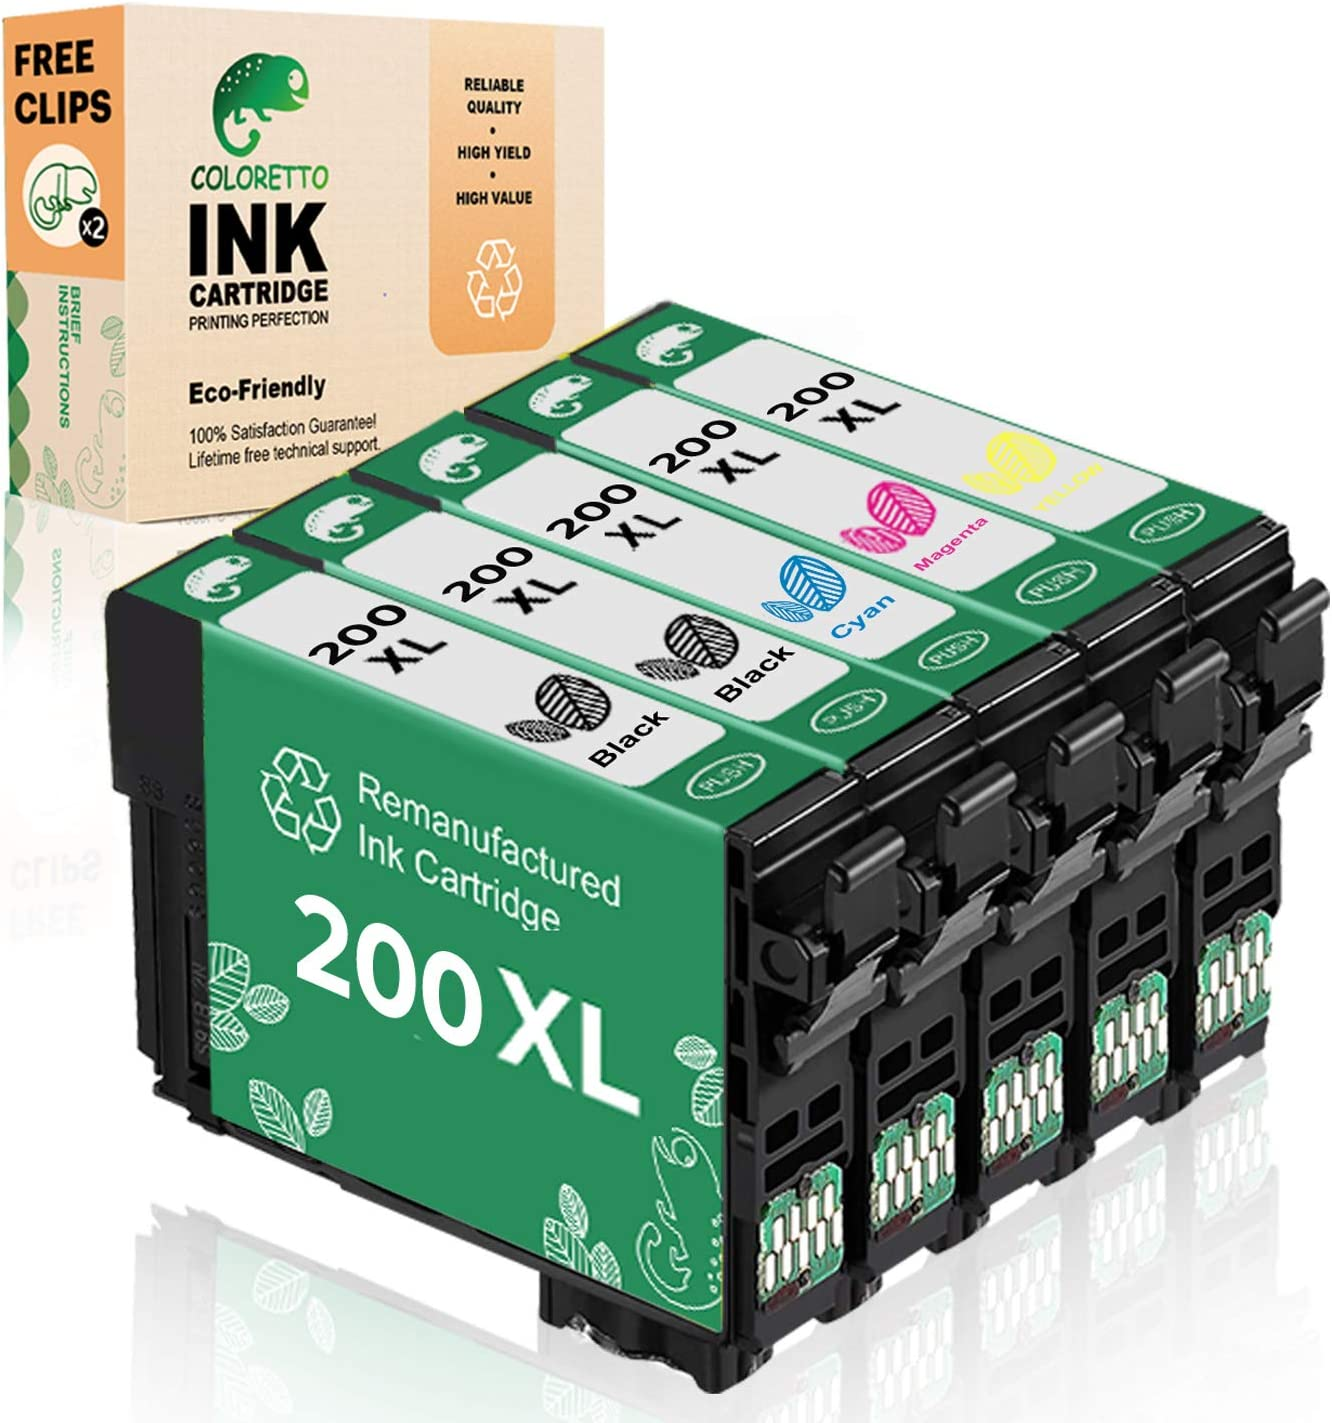 Coloretto Remanufactured Ink Cartridge Replacement for Epson 200 T200XL to use with WF-2540 WF-2530 WF-2520 Expression Home XP-410 XP-400 XP-200 Printer (2Black 1Cyan 1 Magenta 1Yellow) Combo Pack